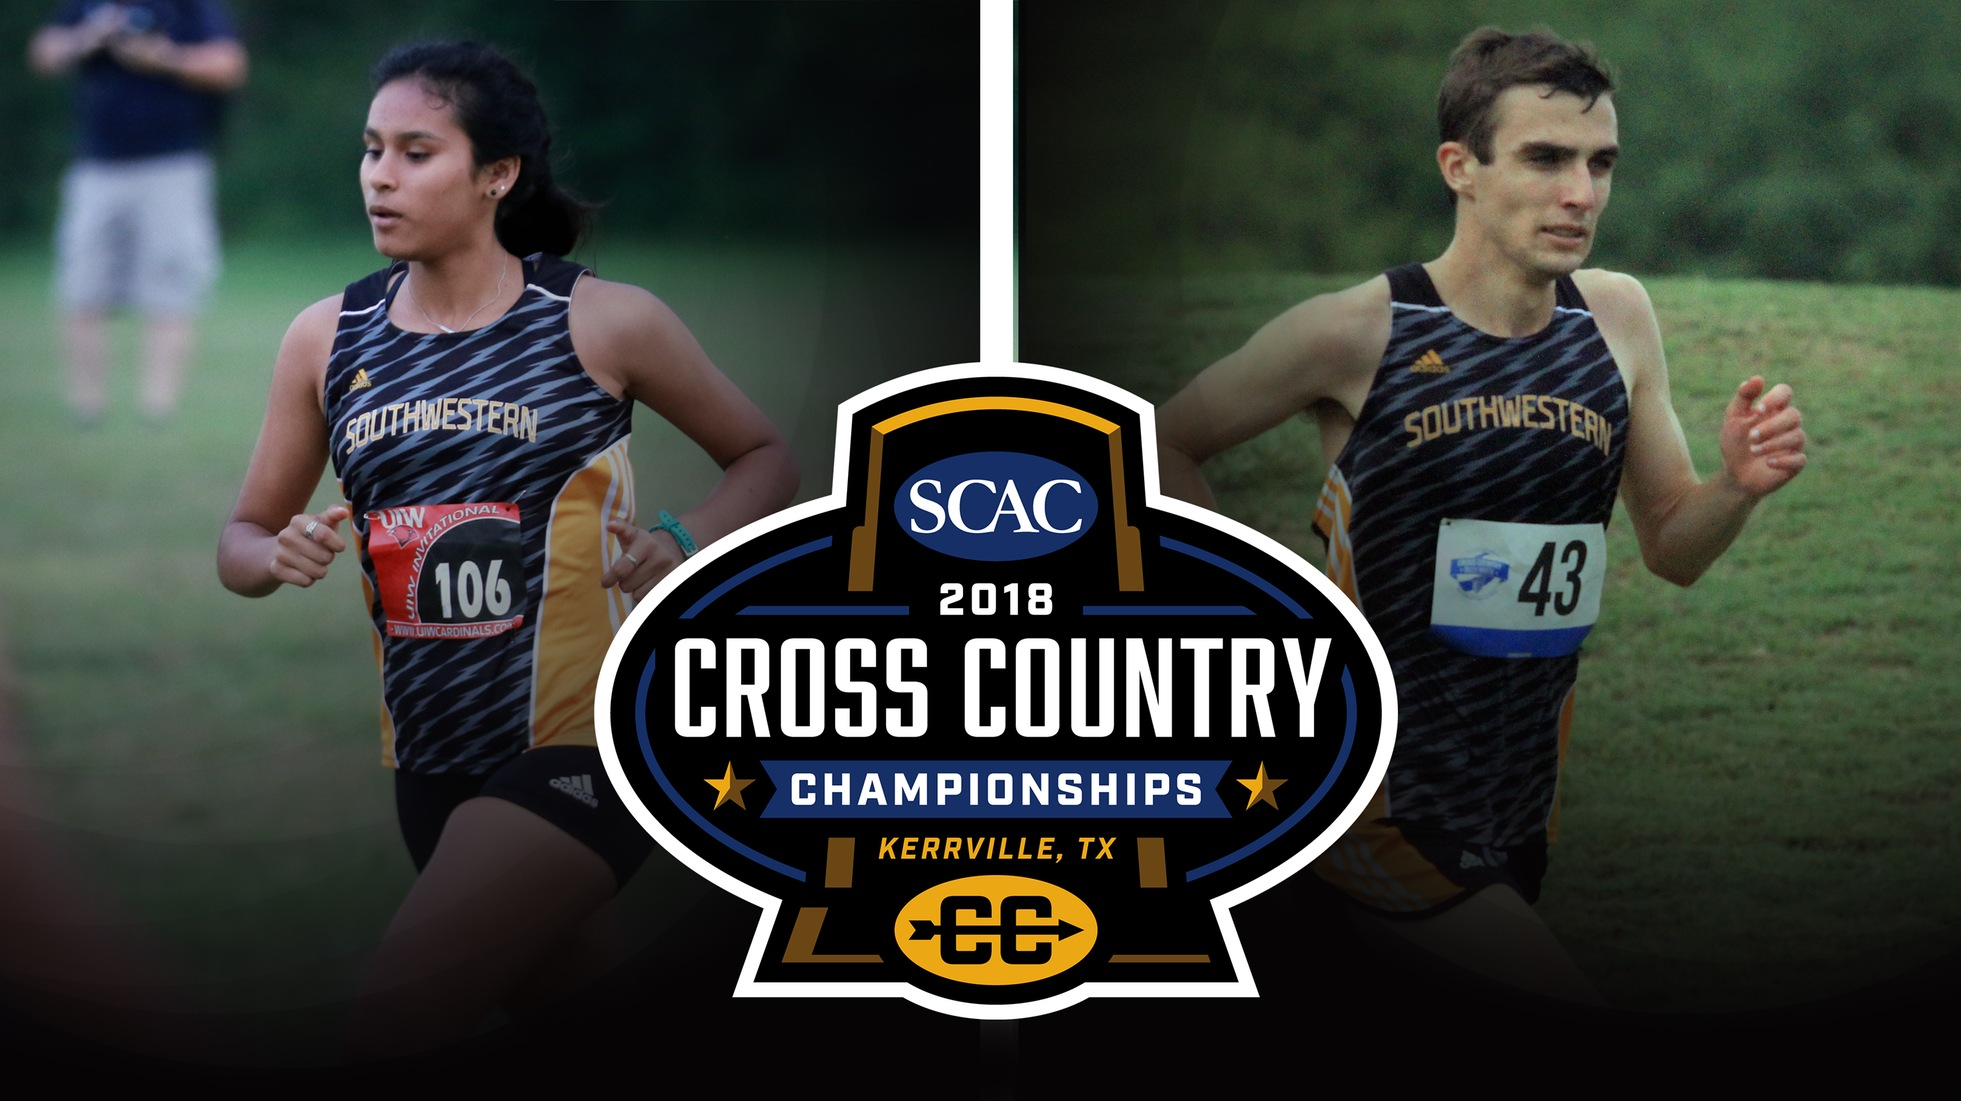 Through Stormy Weeks, Cross Country Remains Steady Heading Into SCAC Championships